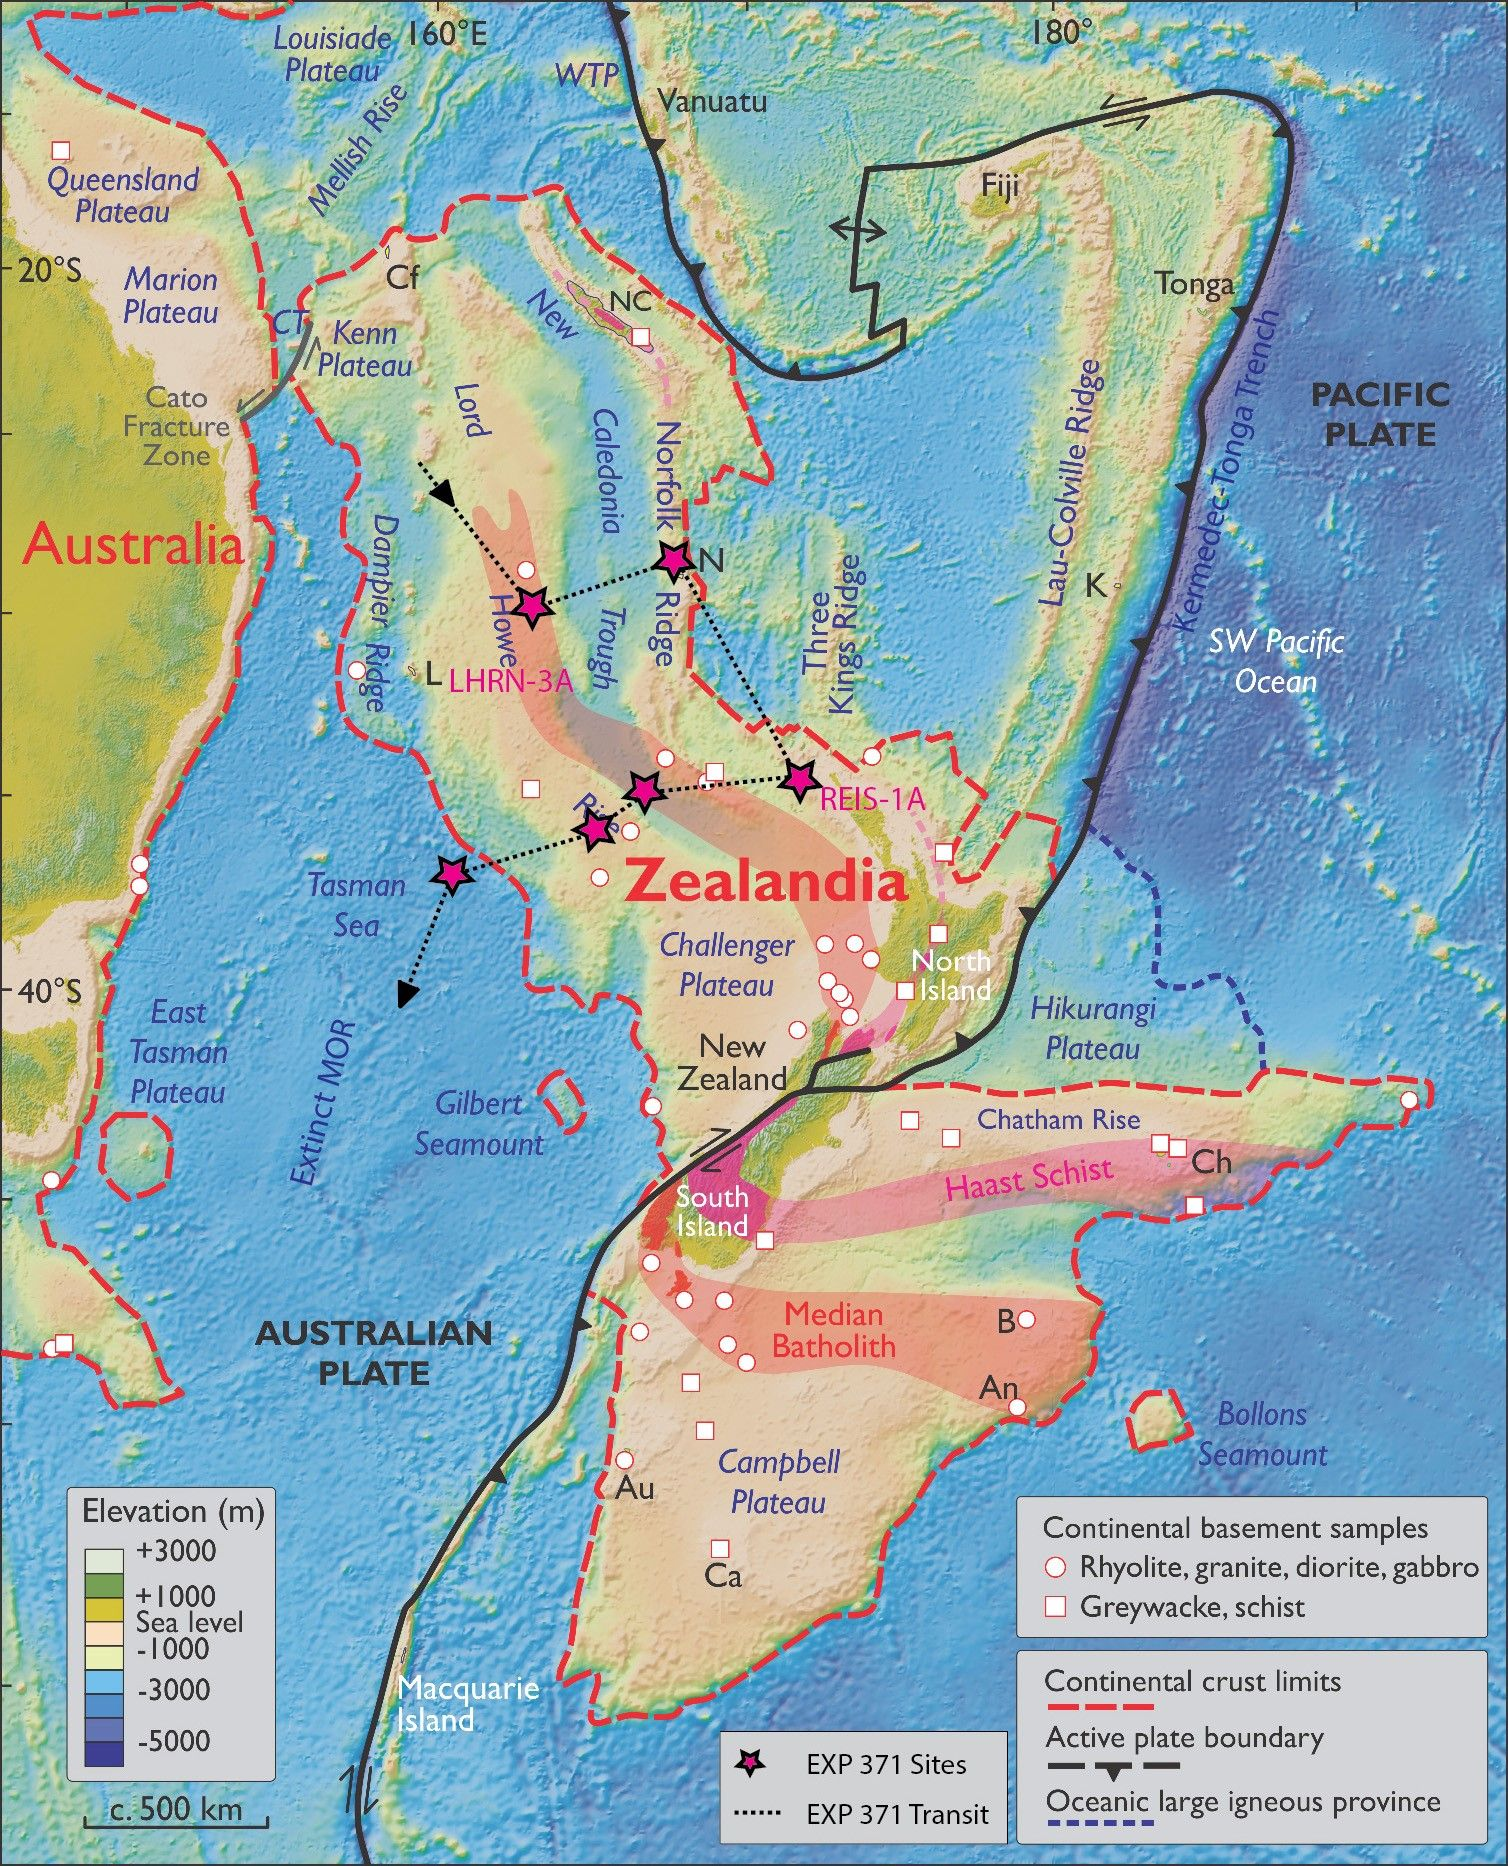 Scientists are about to drill into the lost continent of Zealandia